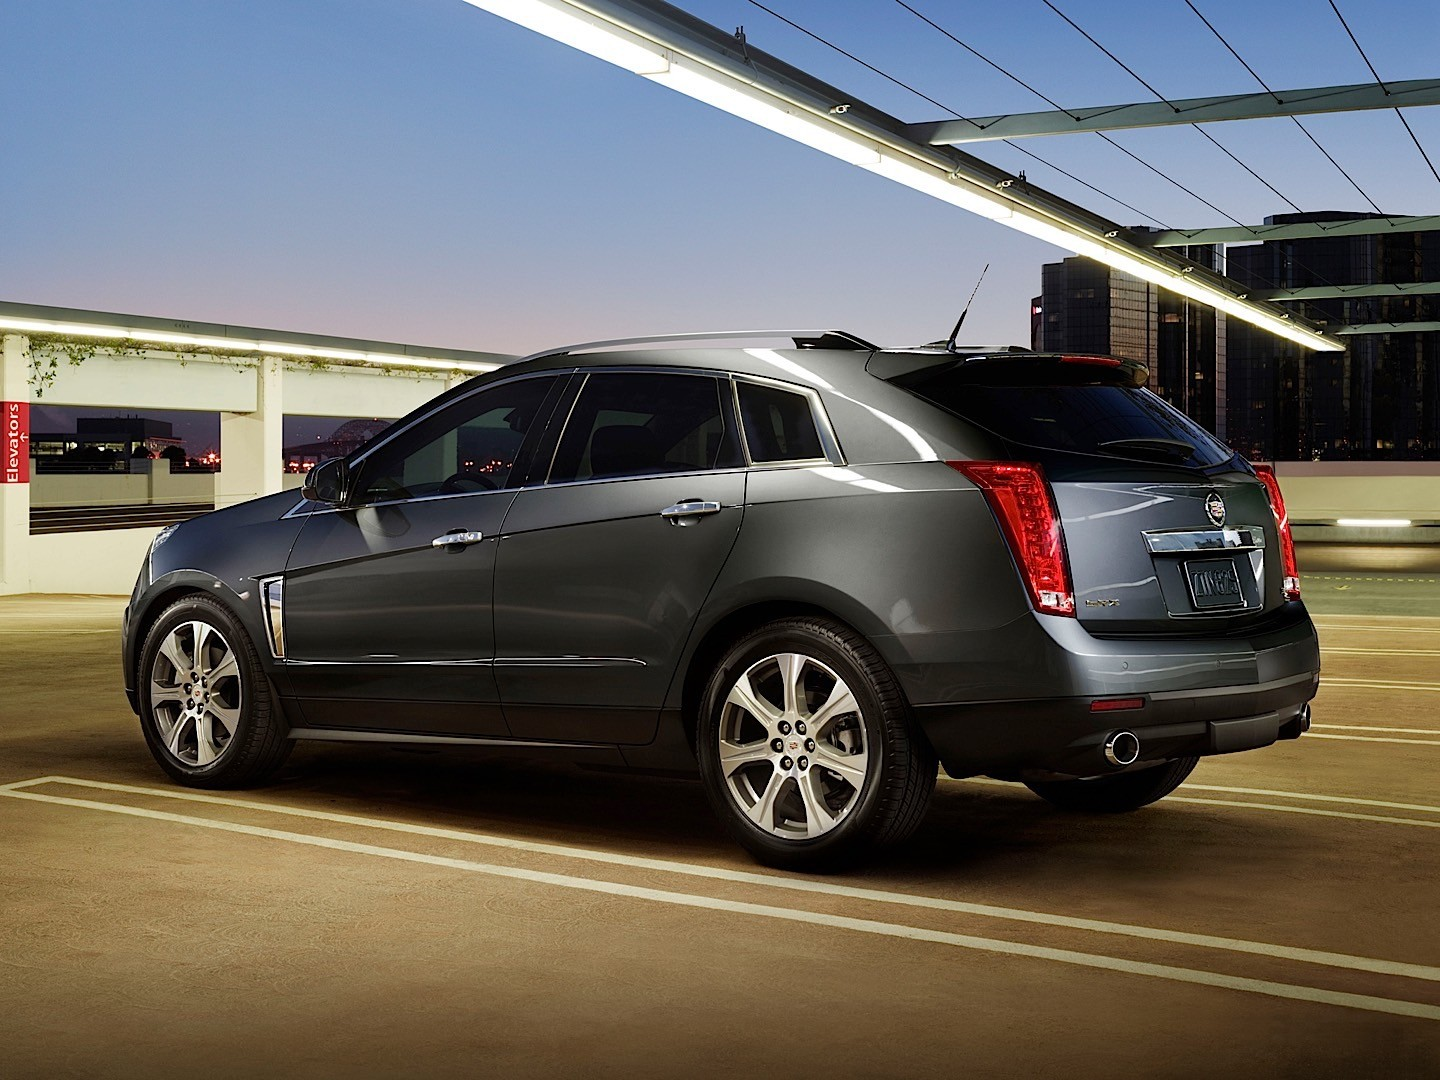 2017 cadillac srx performance review 2017 2018 best cars reviews. Black Bedroom Furniture Sets. Home Design Ideas